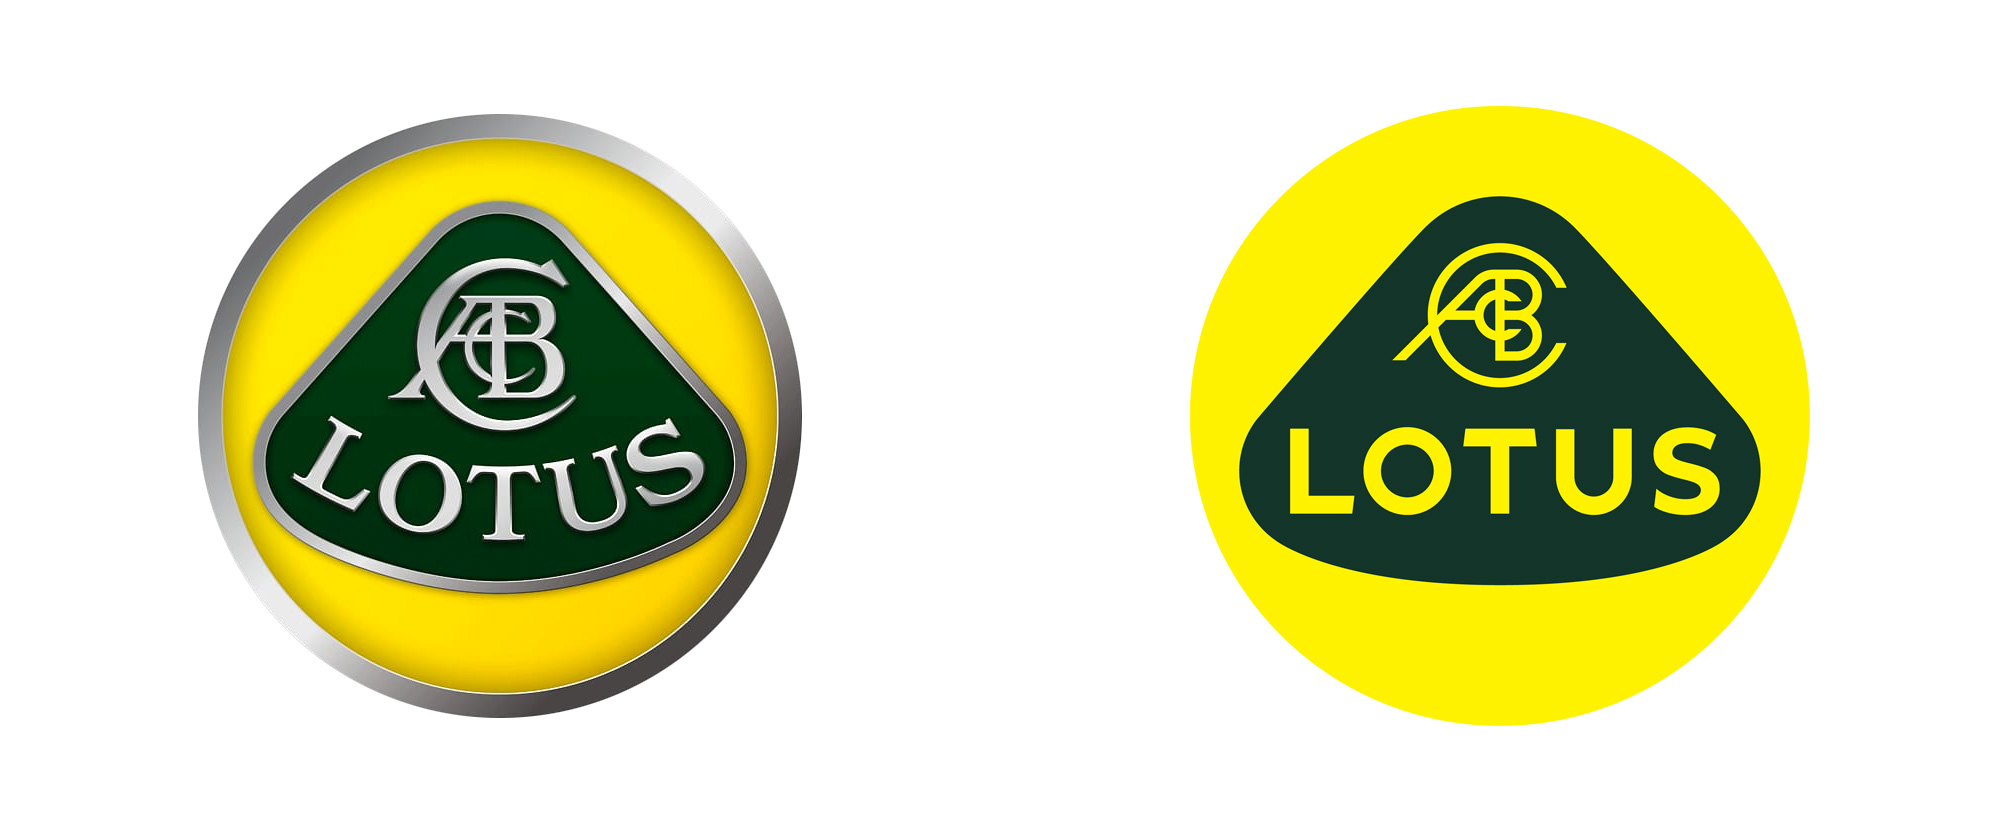 Dual image of the old and new Lotus badges used in lotus reveals rebrand article.